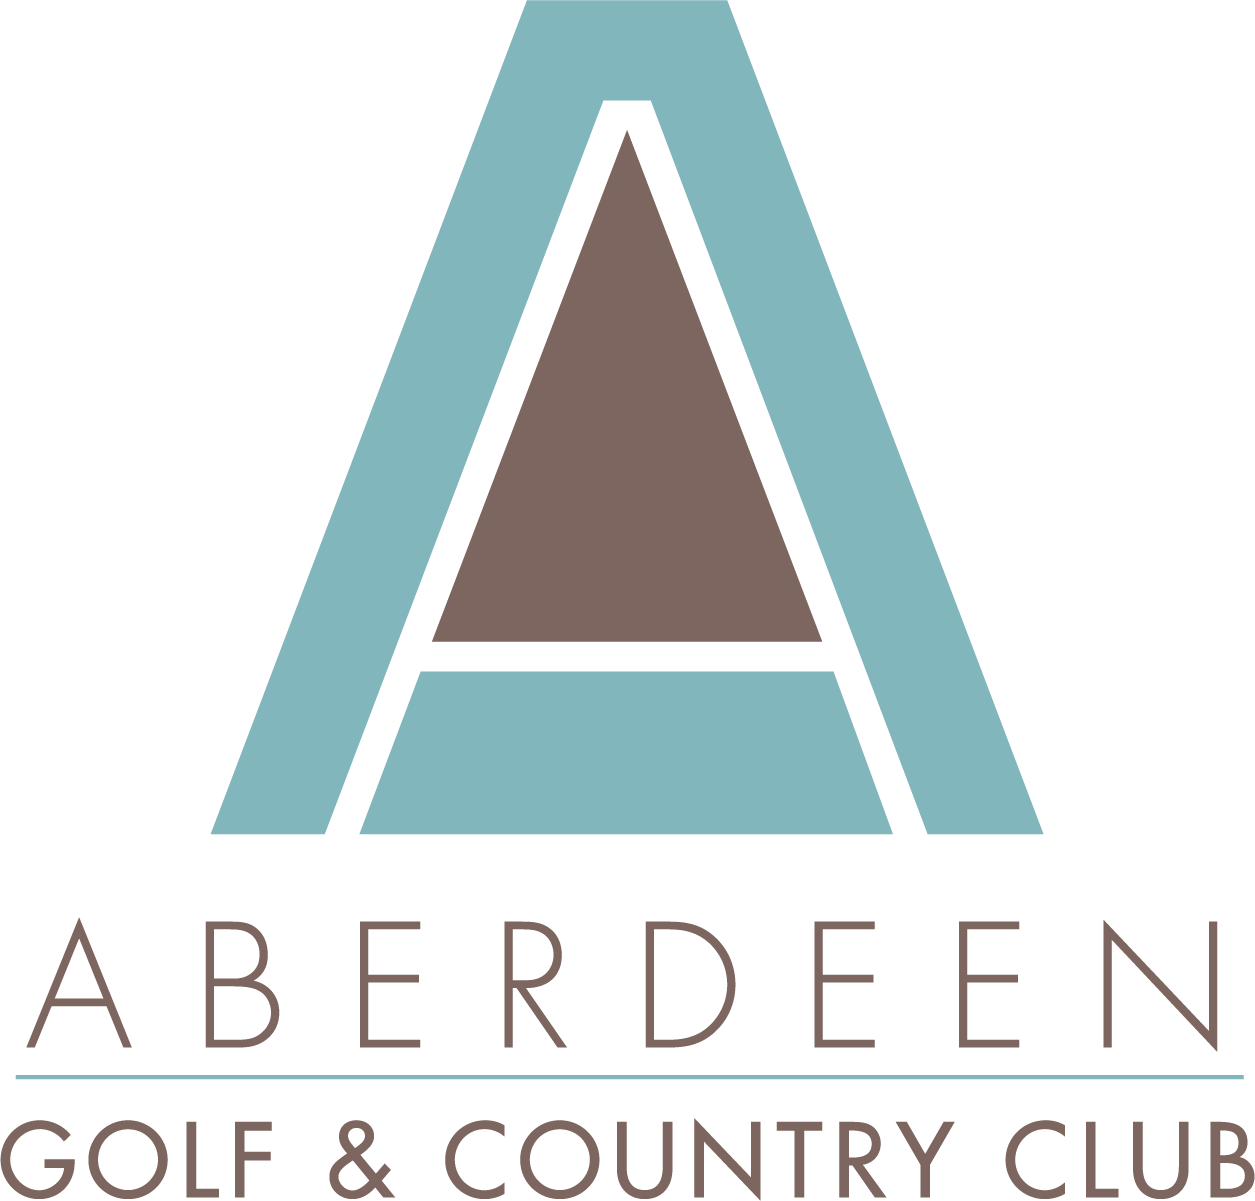 Aberdeen%20logo%20for%20MG%202019.png